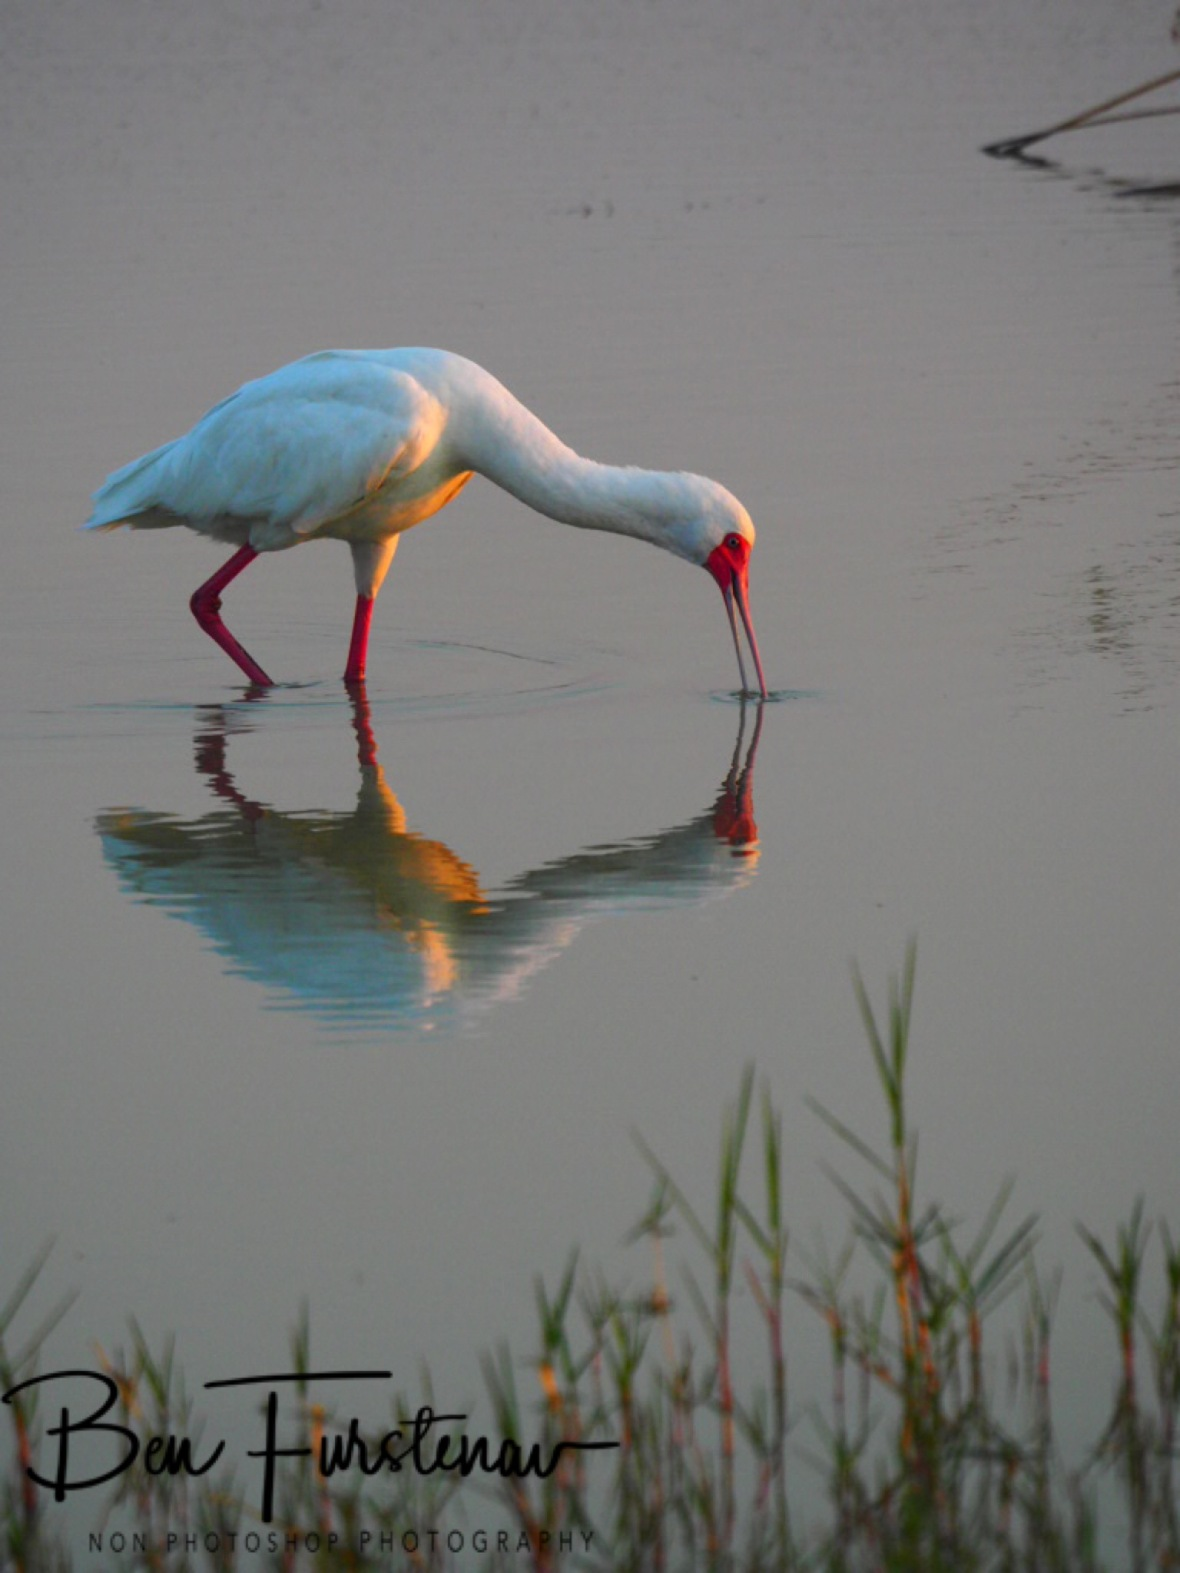 A spoonbill scouts the shallow waters, Moremi National Park, Okavango Delta, Botswana